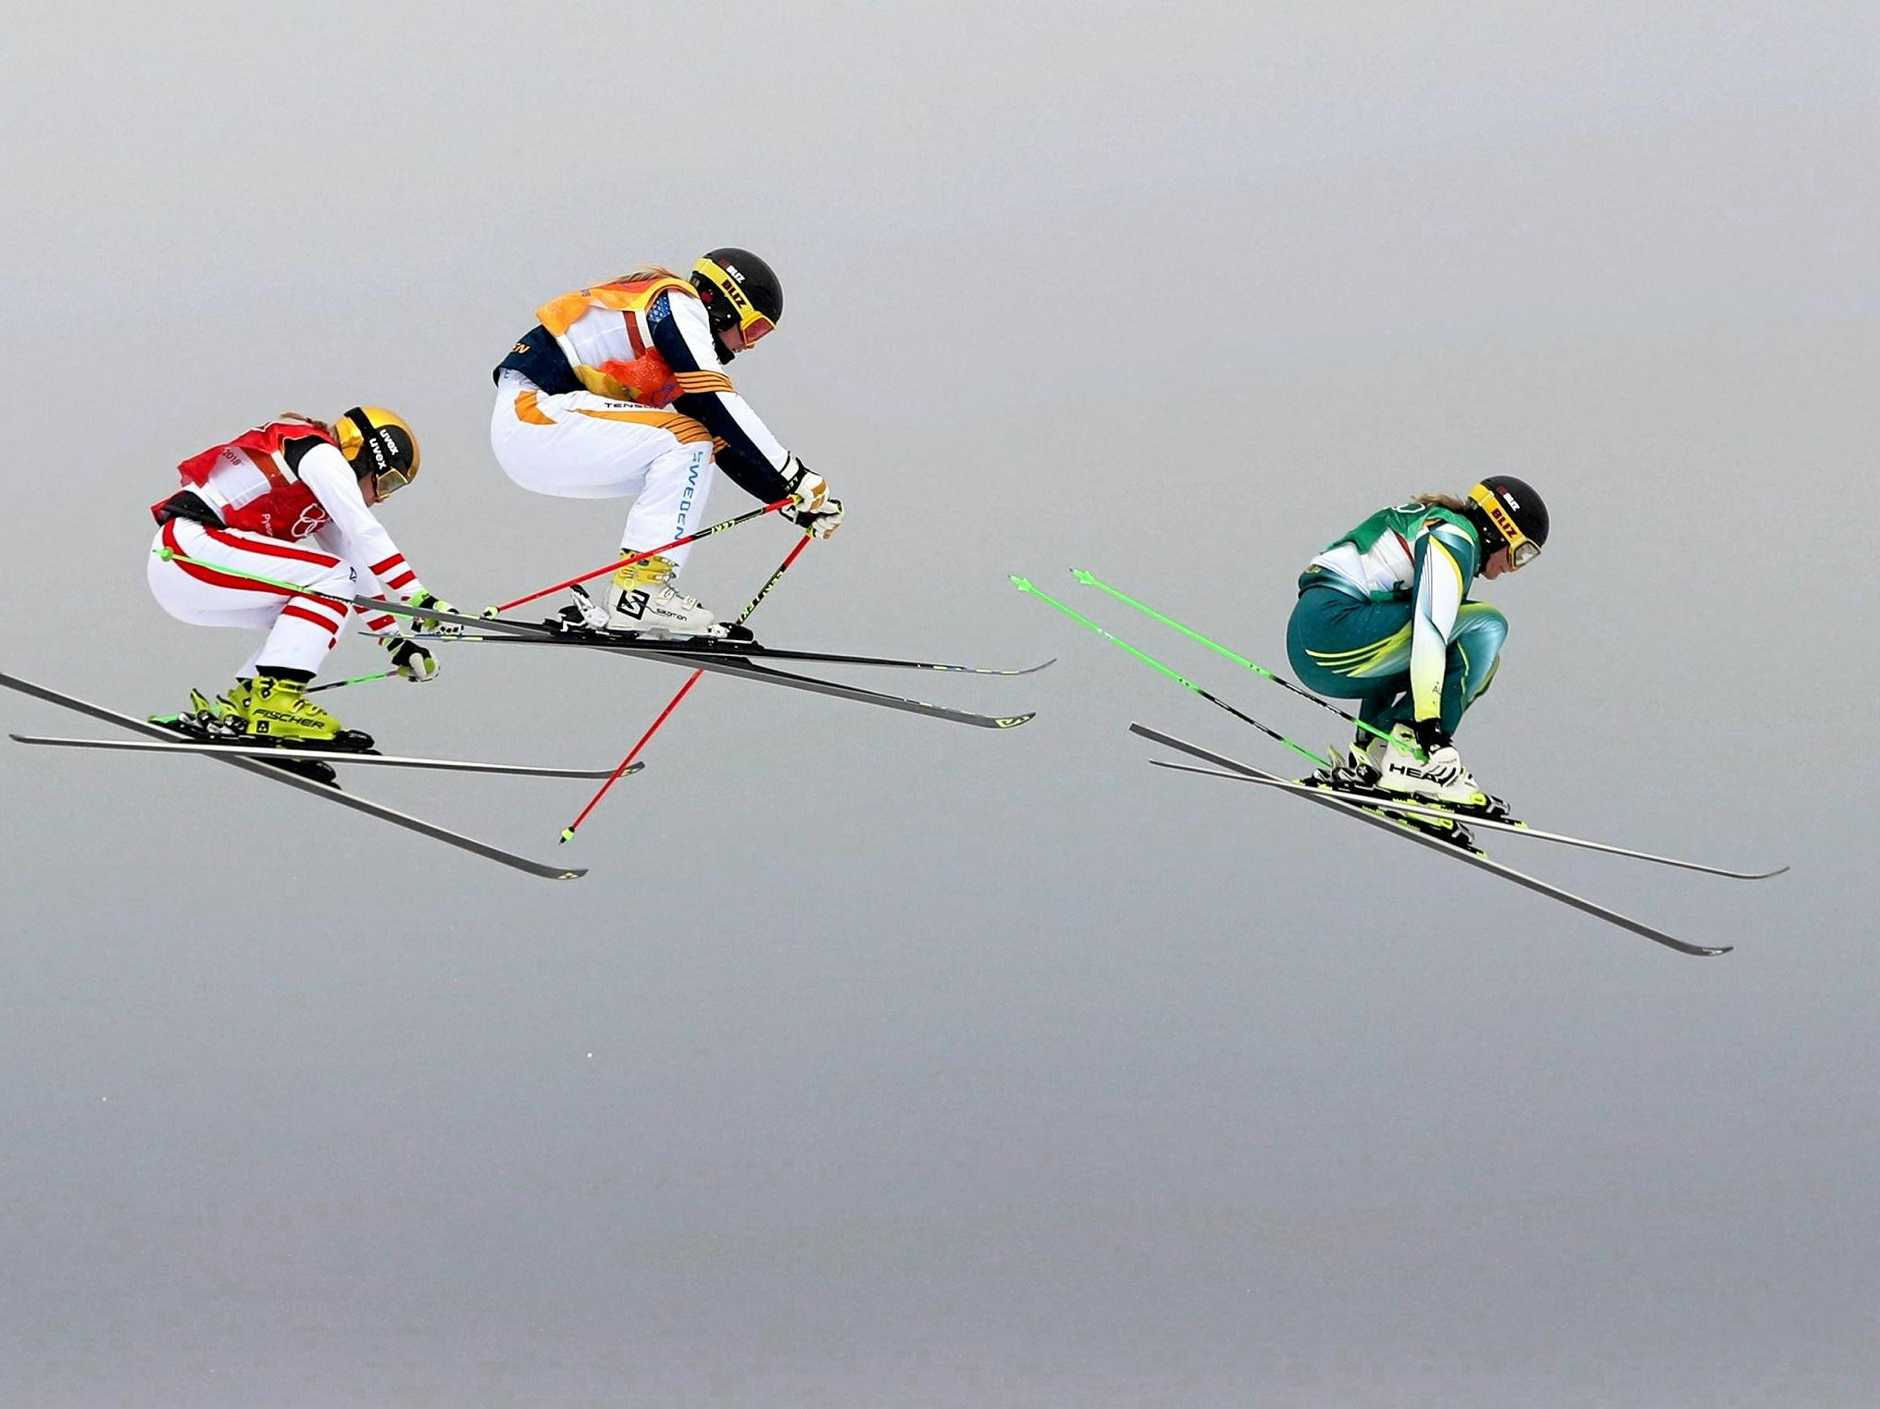 epa06556231 (from right) Sami Kennedy-Sim of Australia, Lisa Andersson of Sweden and Andrea Limbacher of Austria compete in the quarter finals of the Women's Freestyle Skiing Ski Cross competition at the Bokwang Phoenix Park during the PyeongChang 2018 Olympic Games, South Korea, 23 February 2018.  EPA/FAZRY ISMAIL